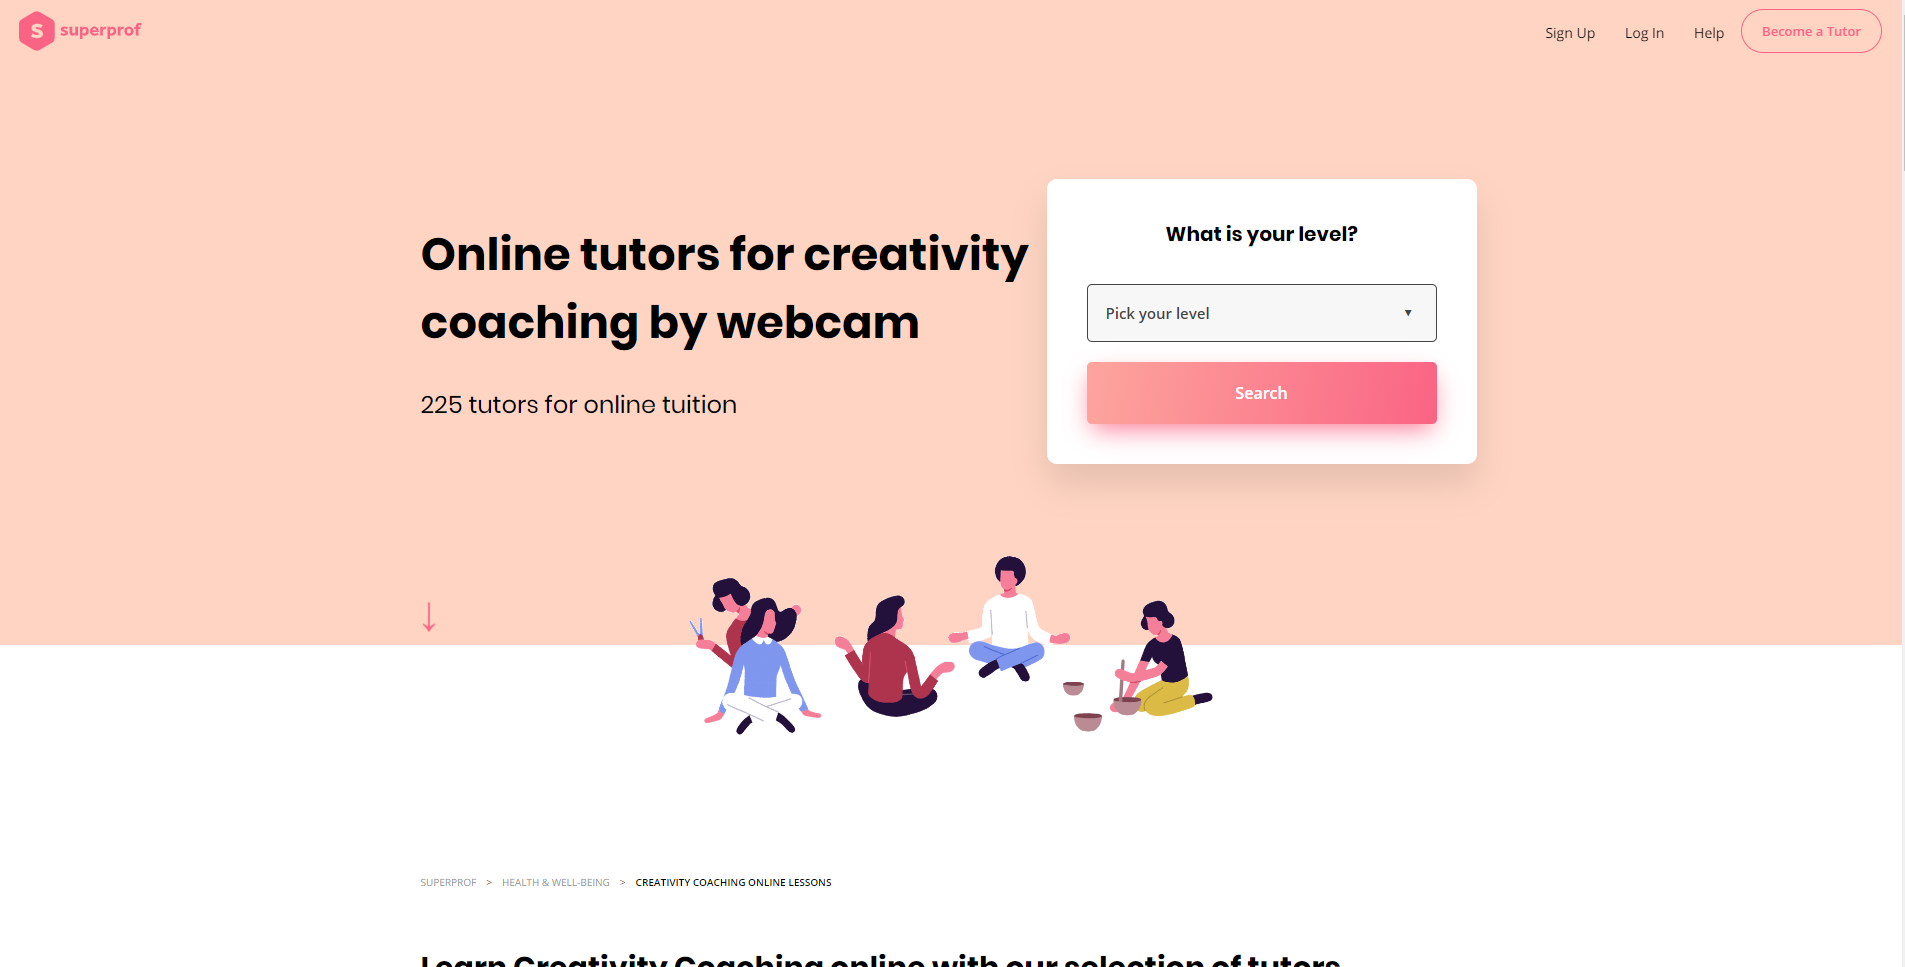 Superprof Learn Creativity Lessons Online